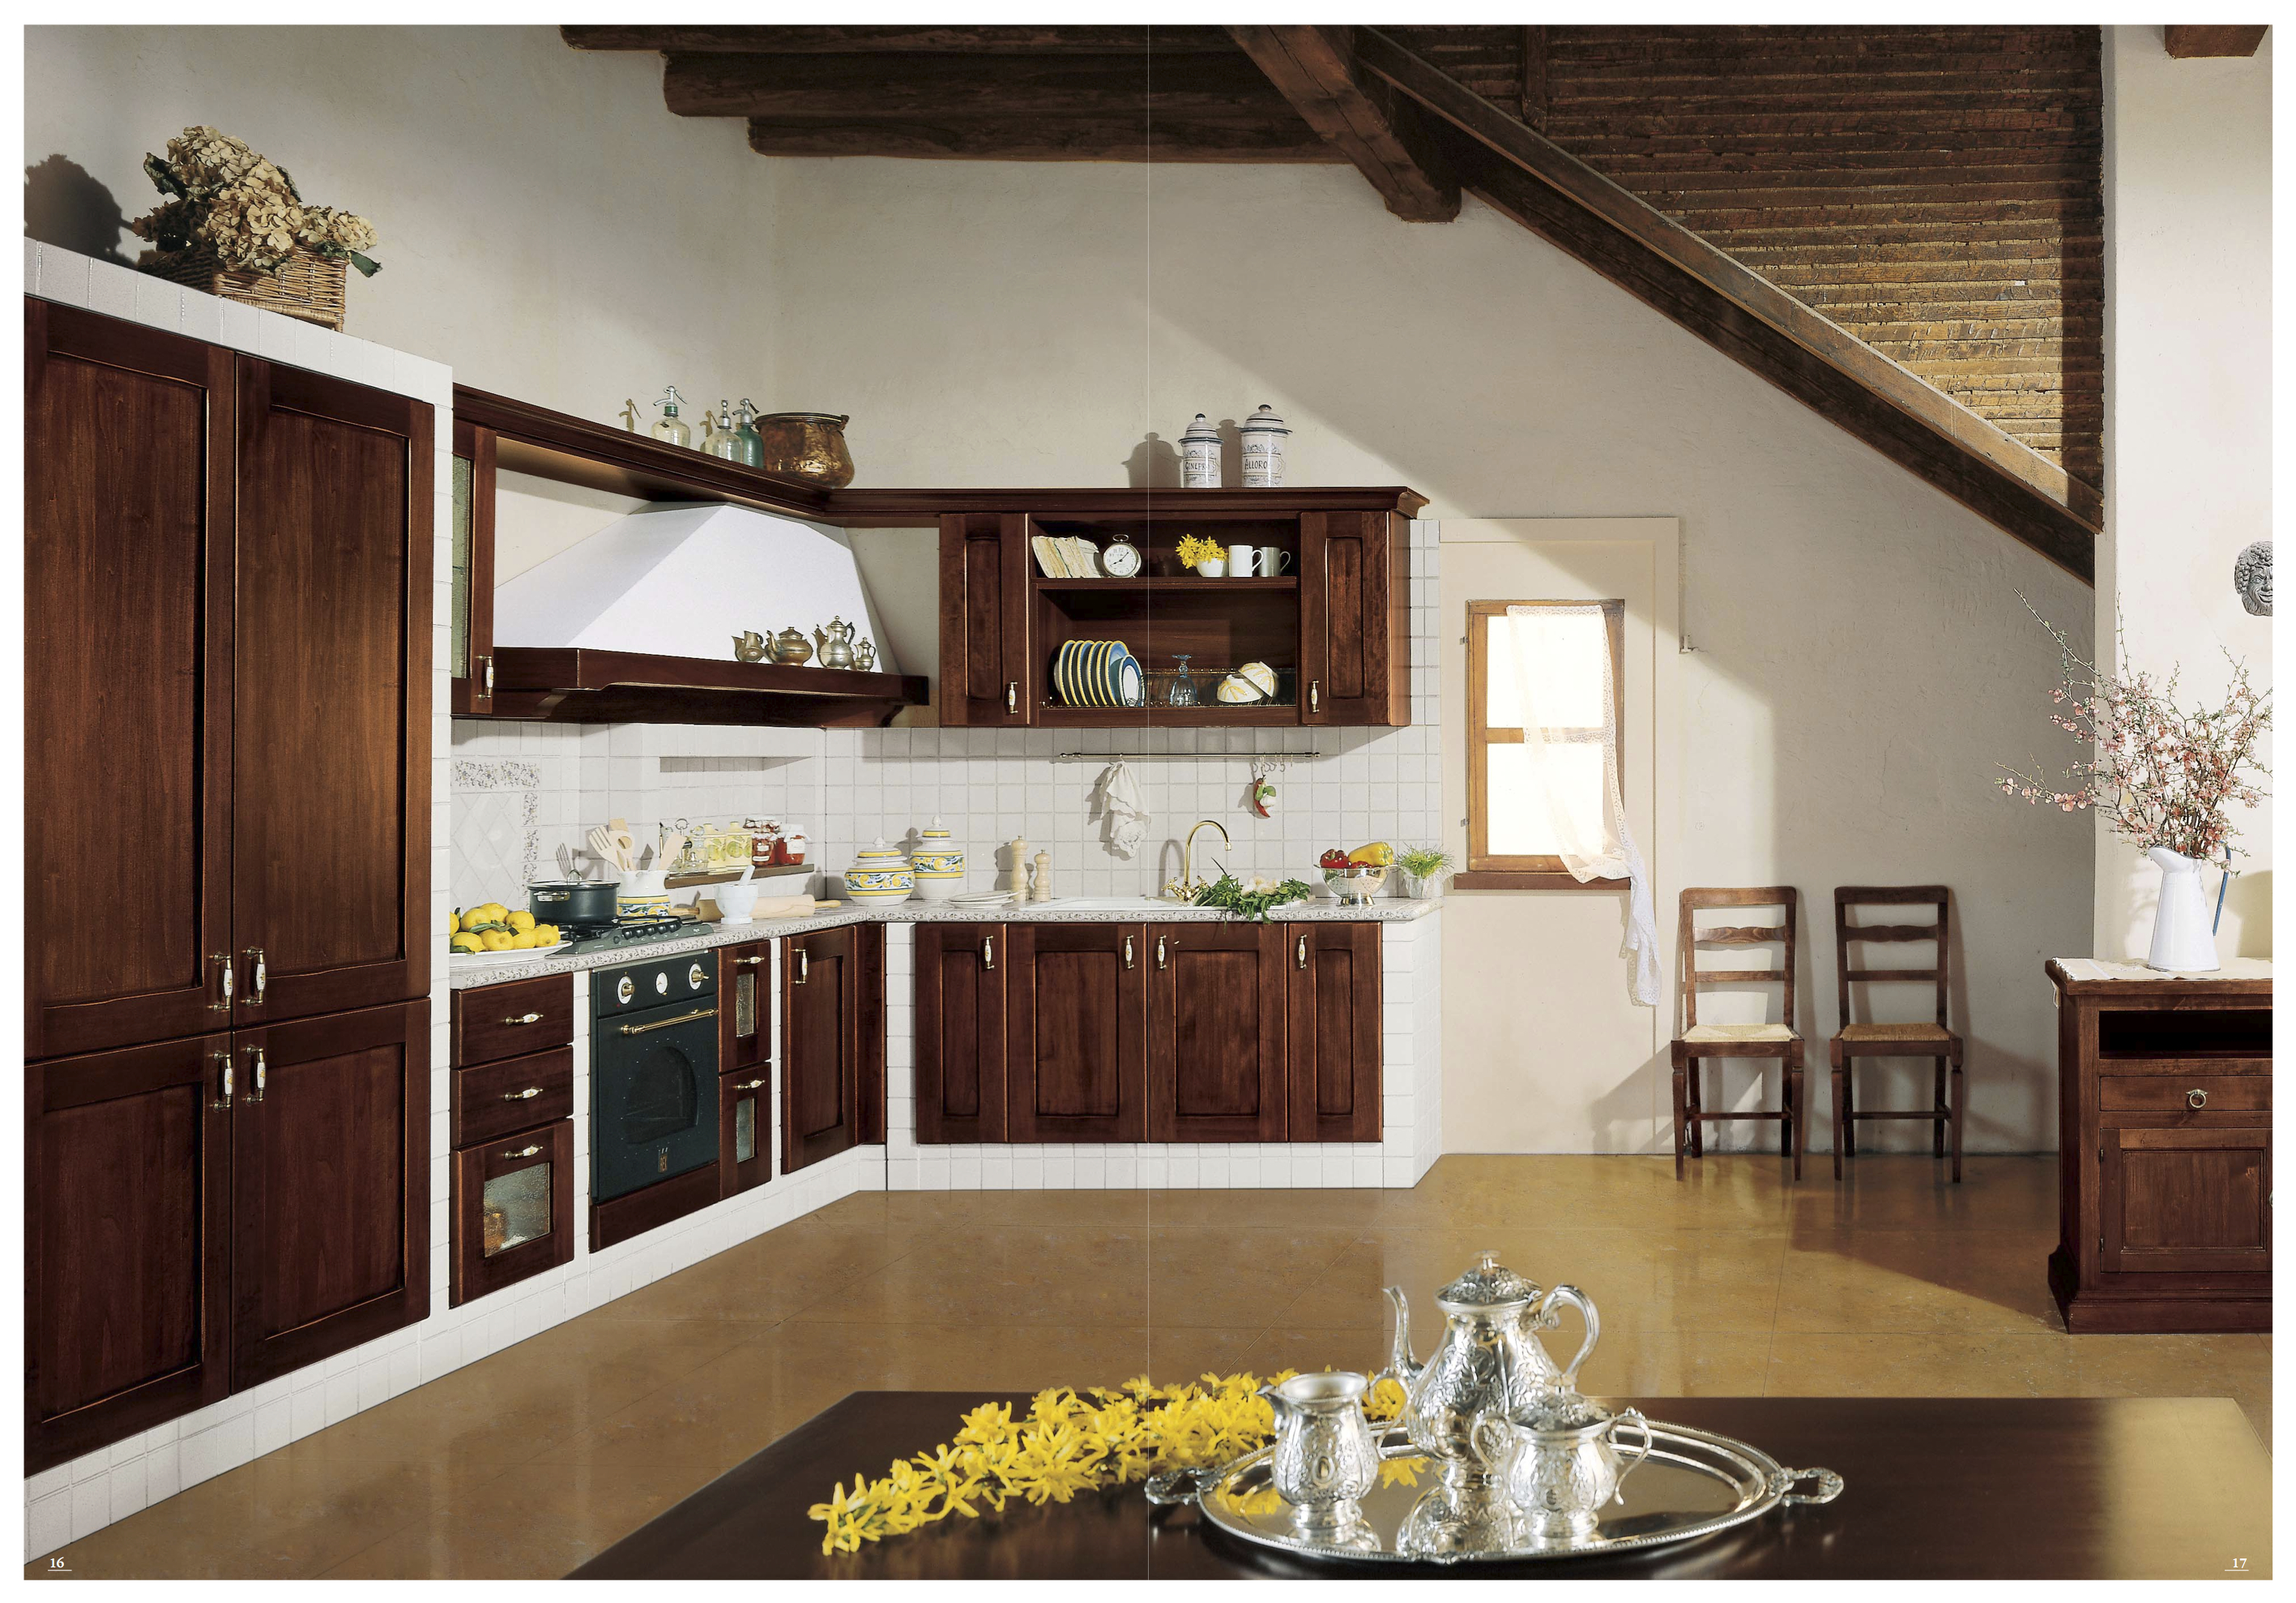 Classic kitchens visionary kitchens custom cabinetry for Classic style kitchen ideas